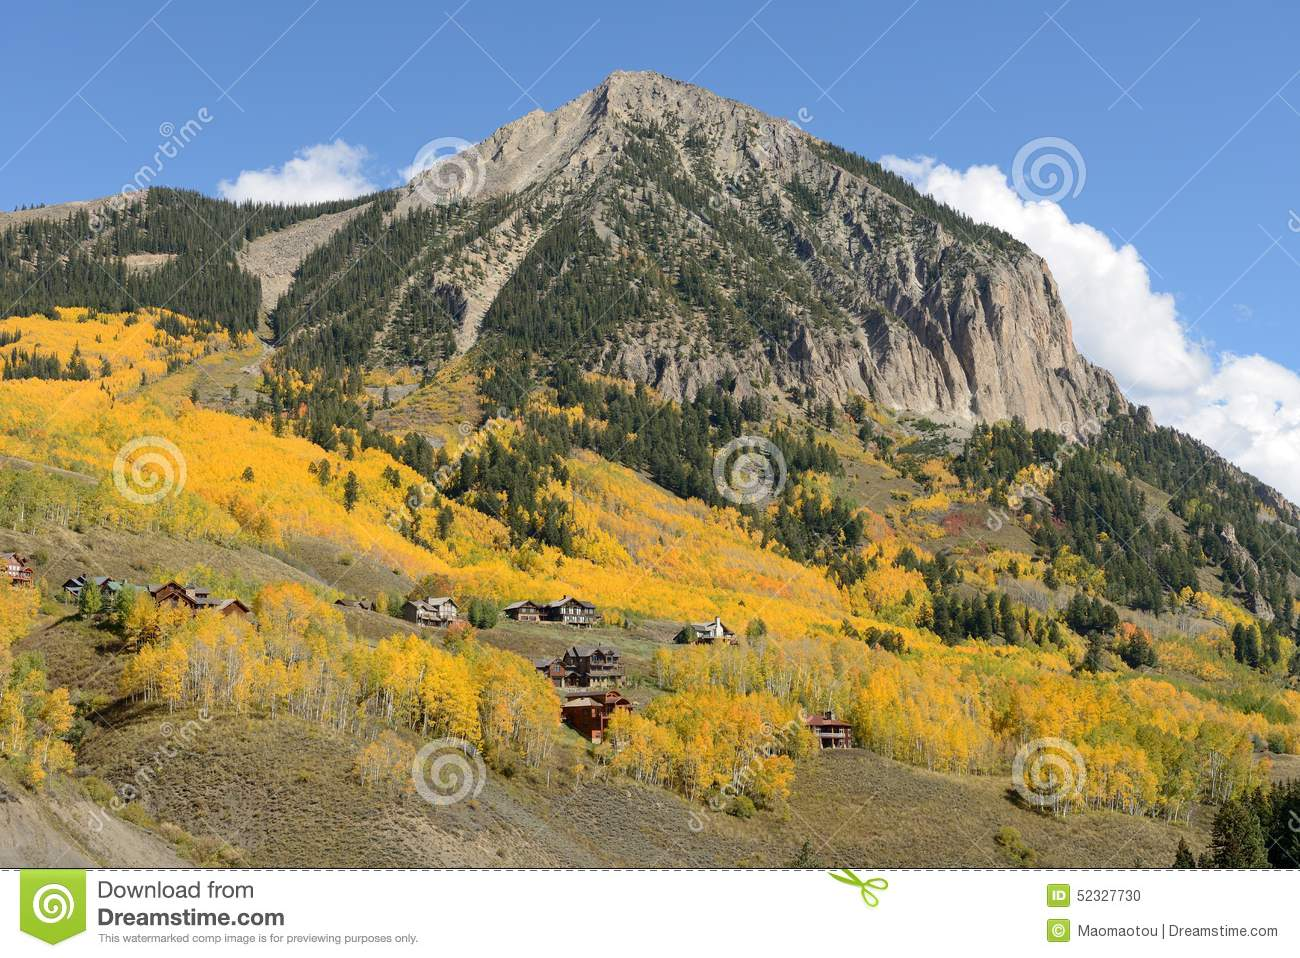 Mount crested butte clipart #19